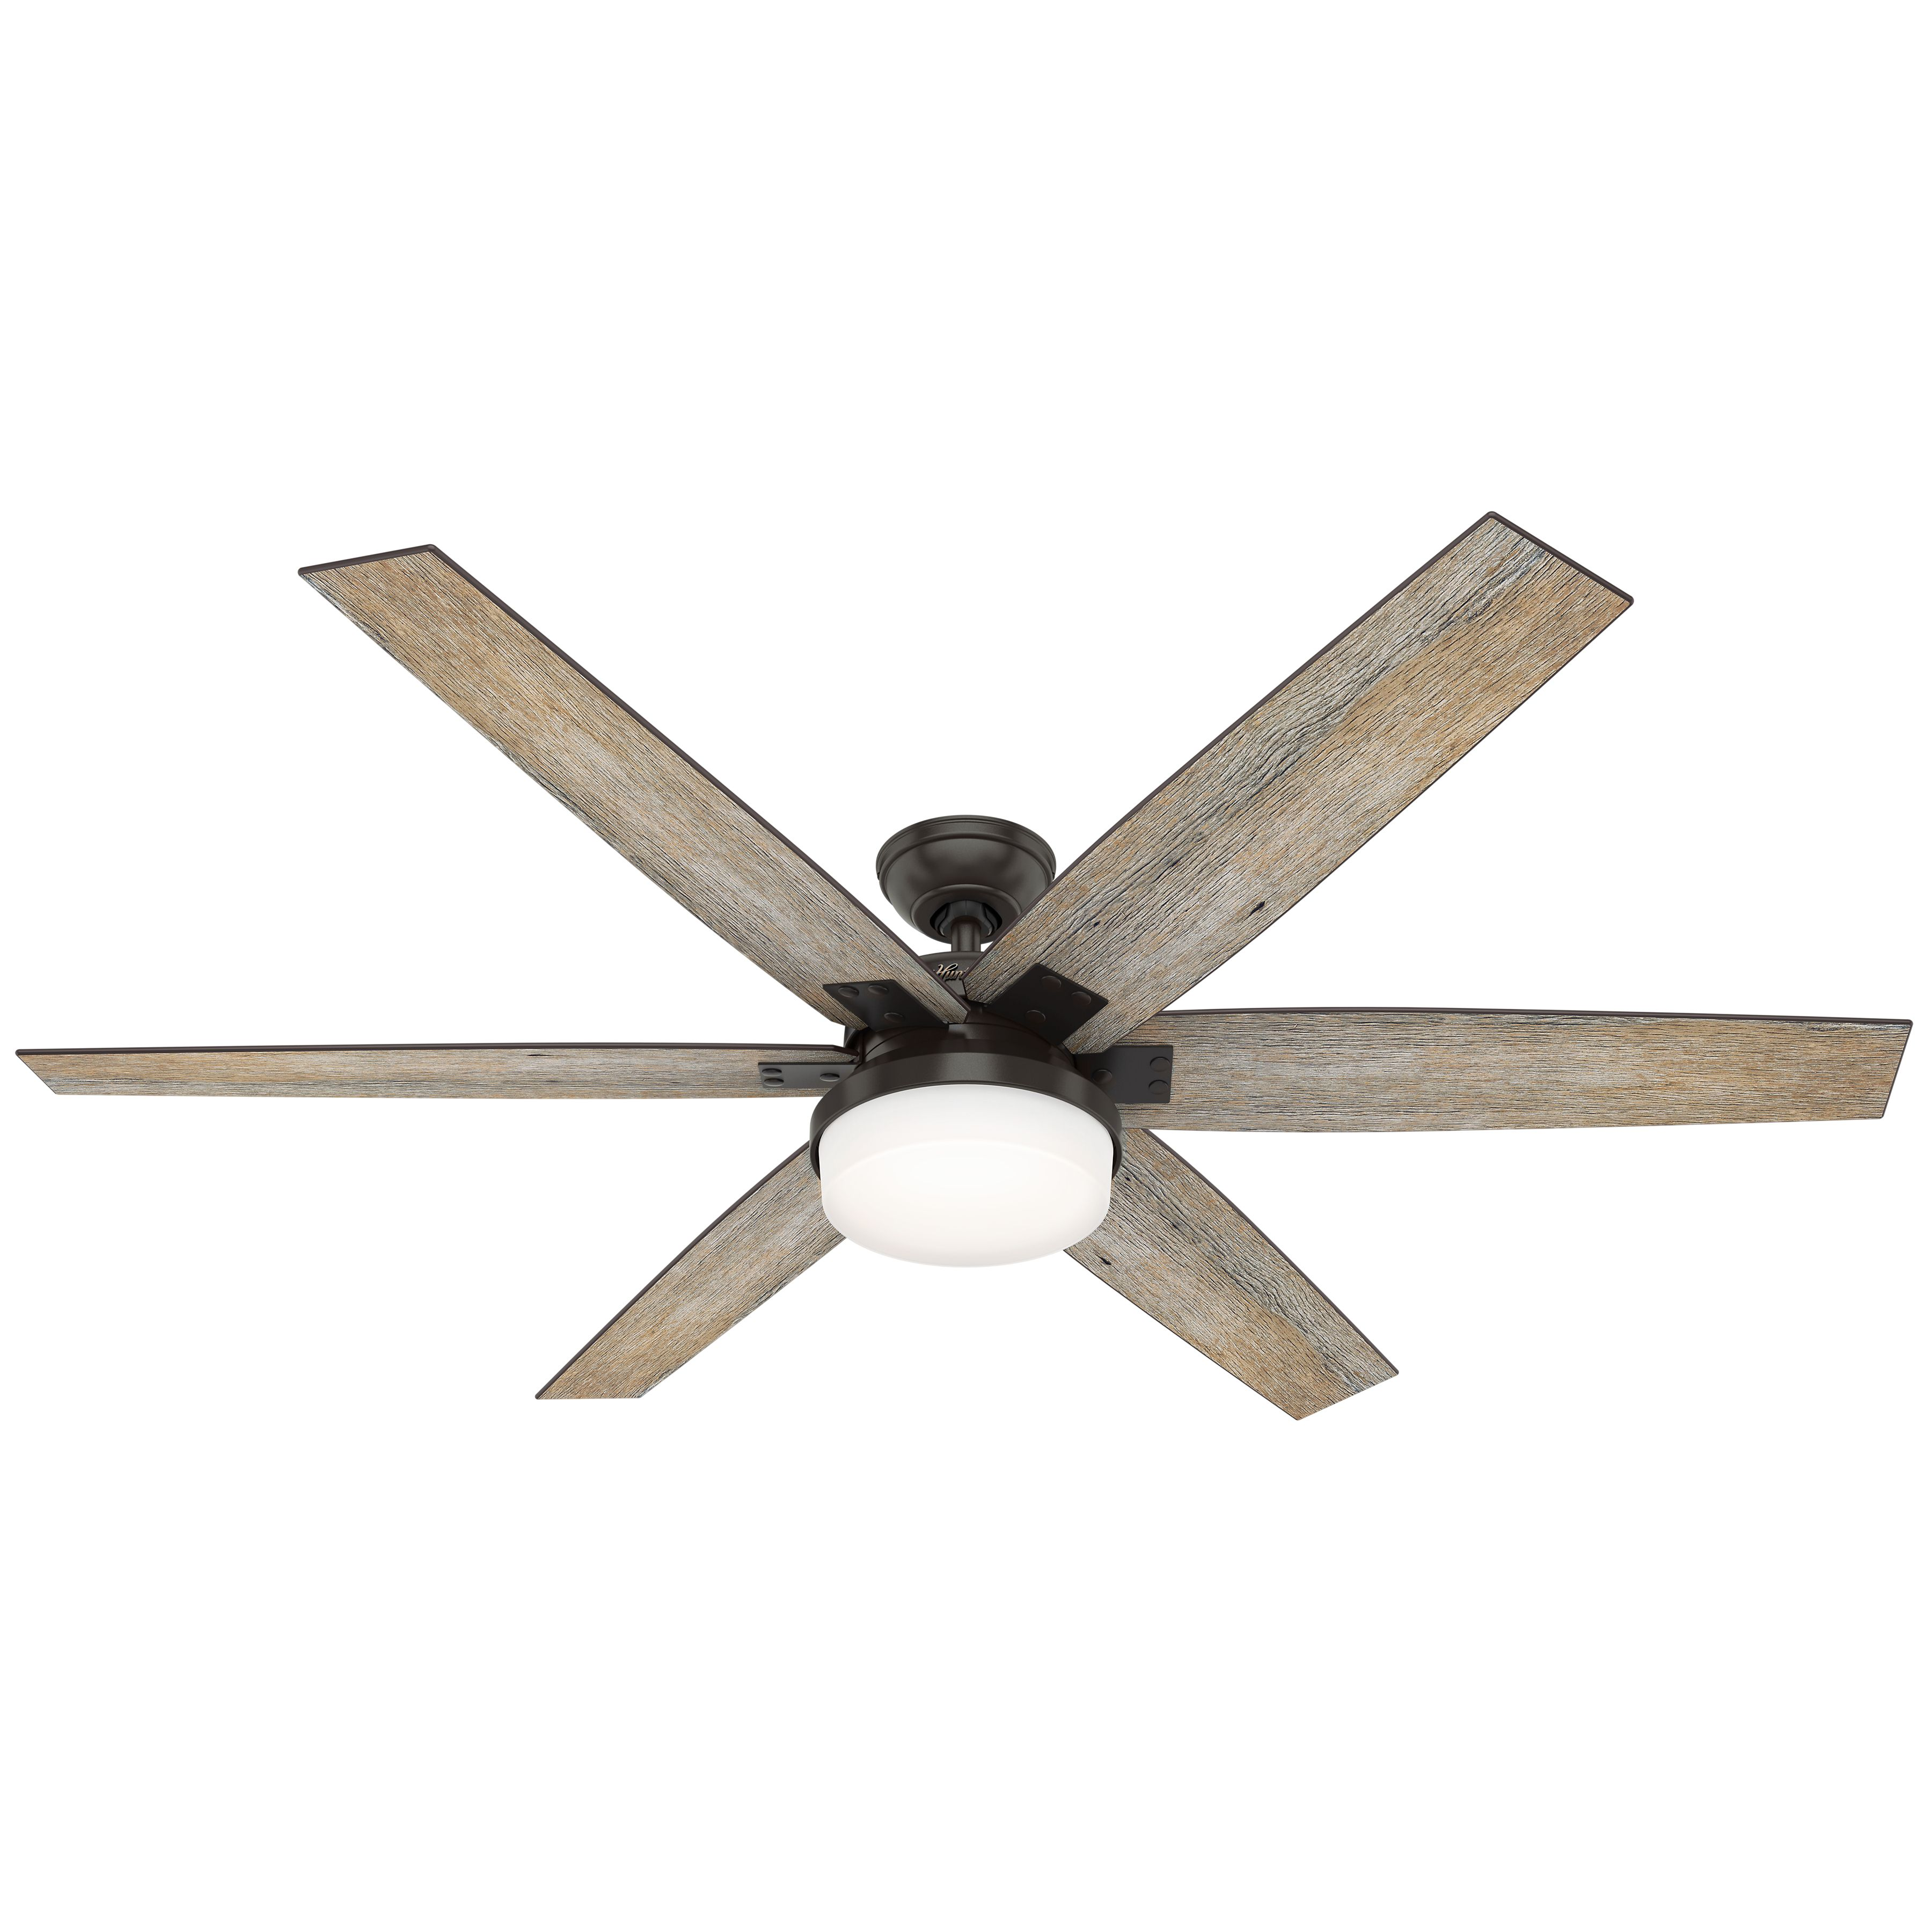 Discover What A Professional Has To Say On The Ceiling Fans